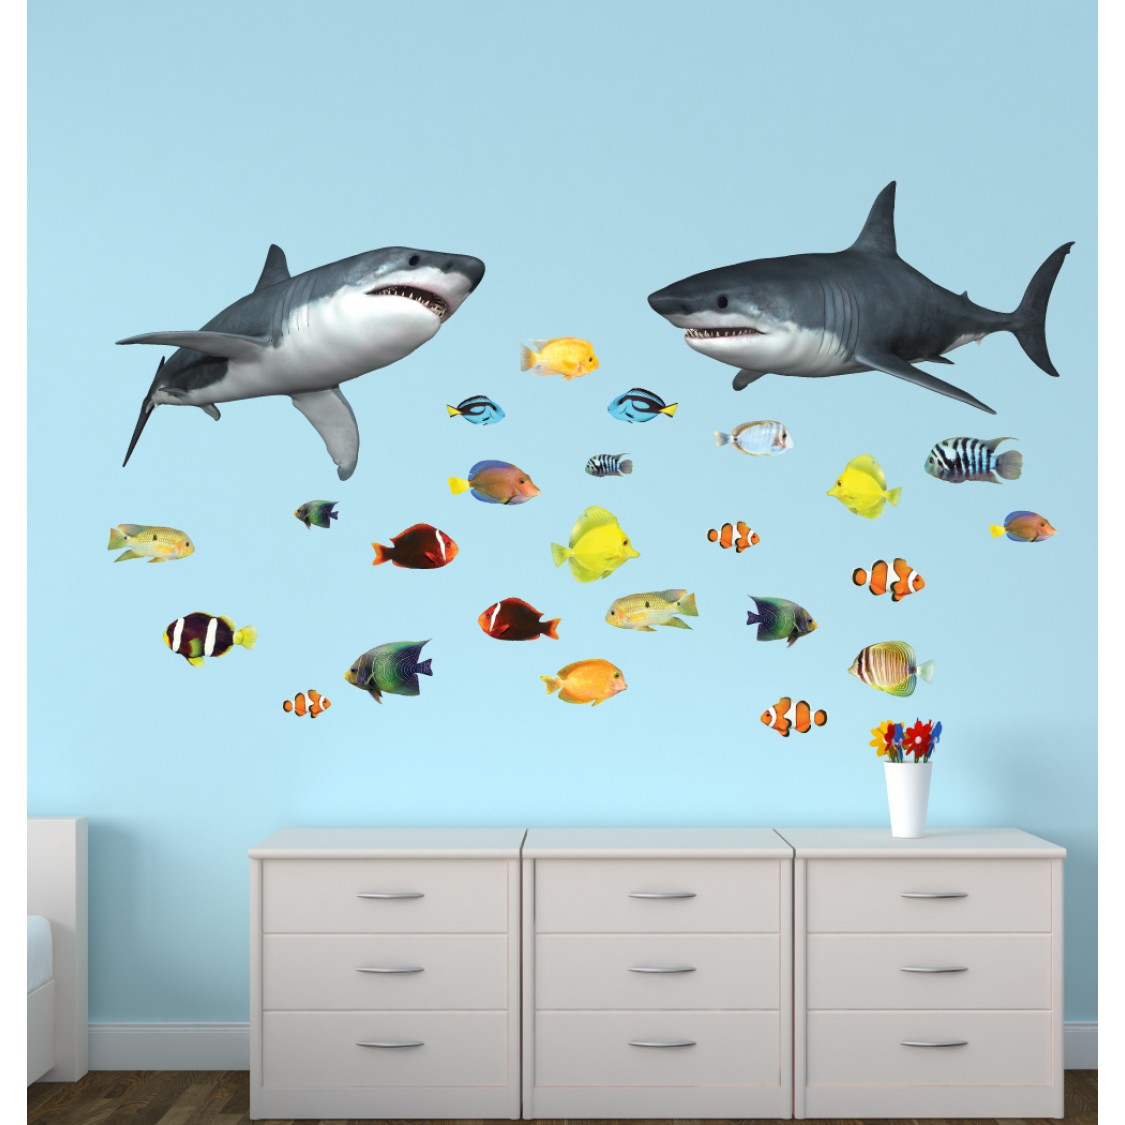 Nursery Decals And More